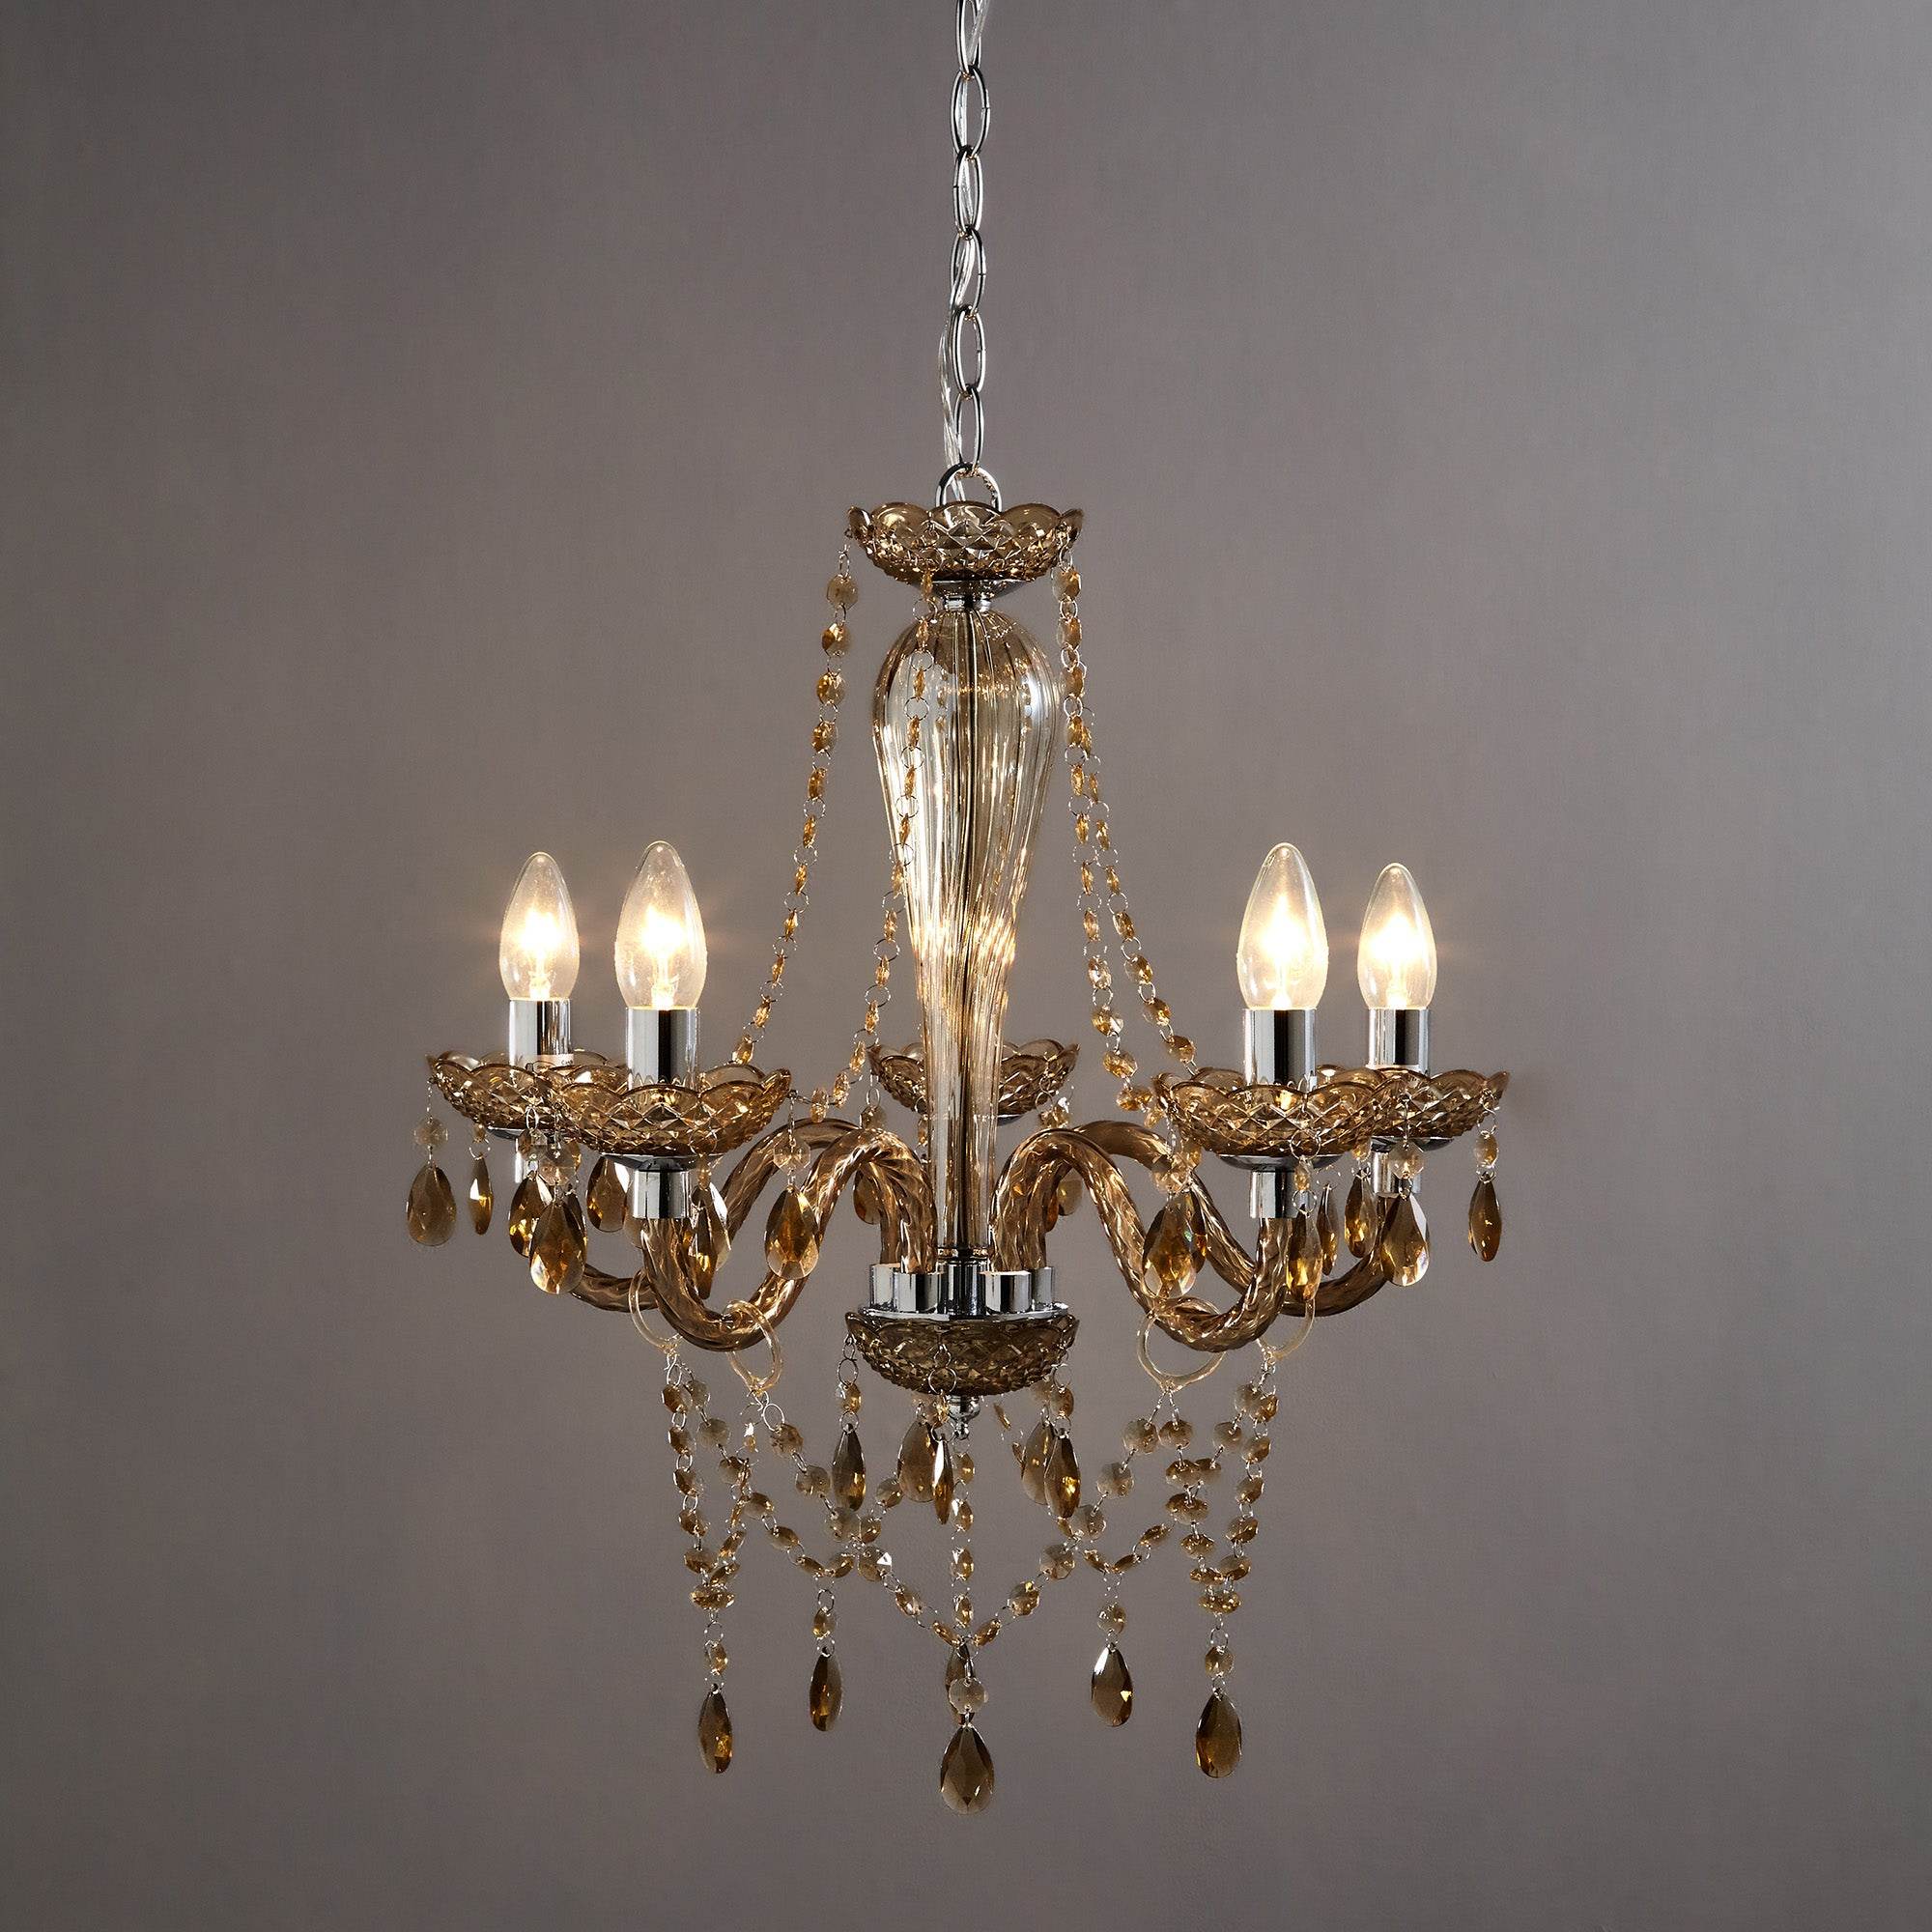 Champagne Antoinette 5 Light Chandelier